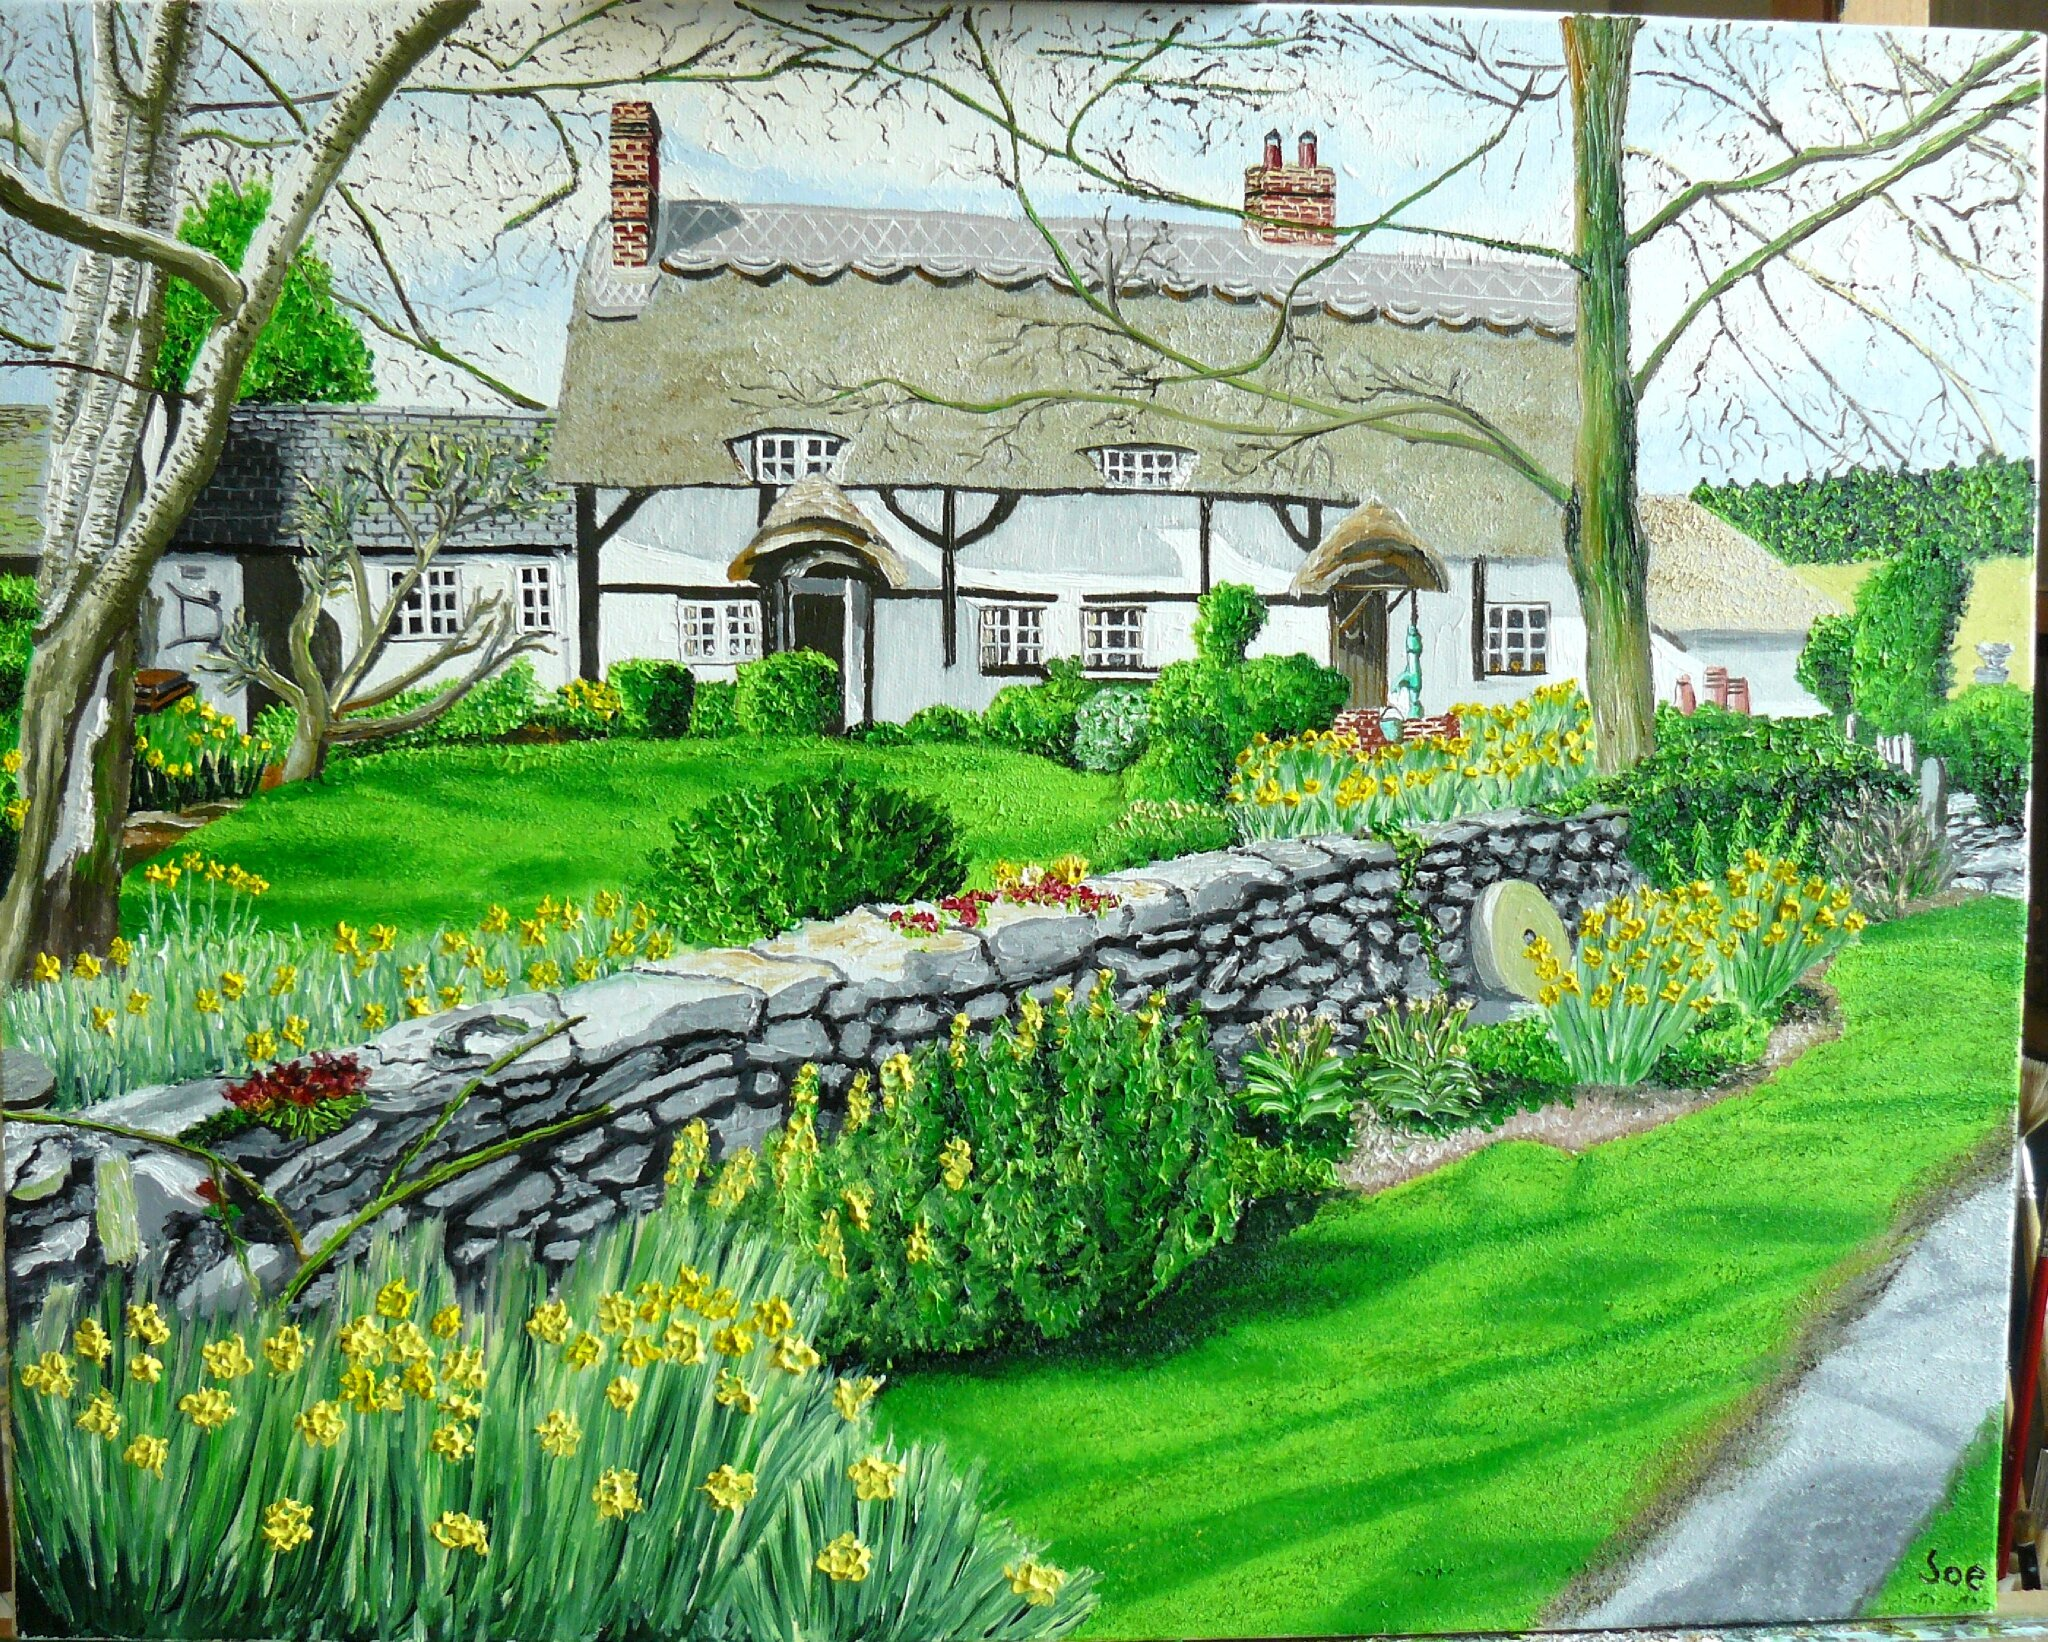 An English Thatched House